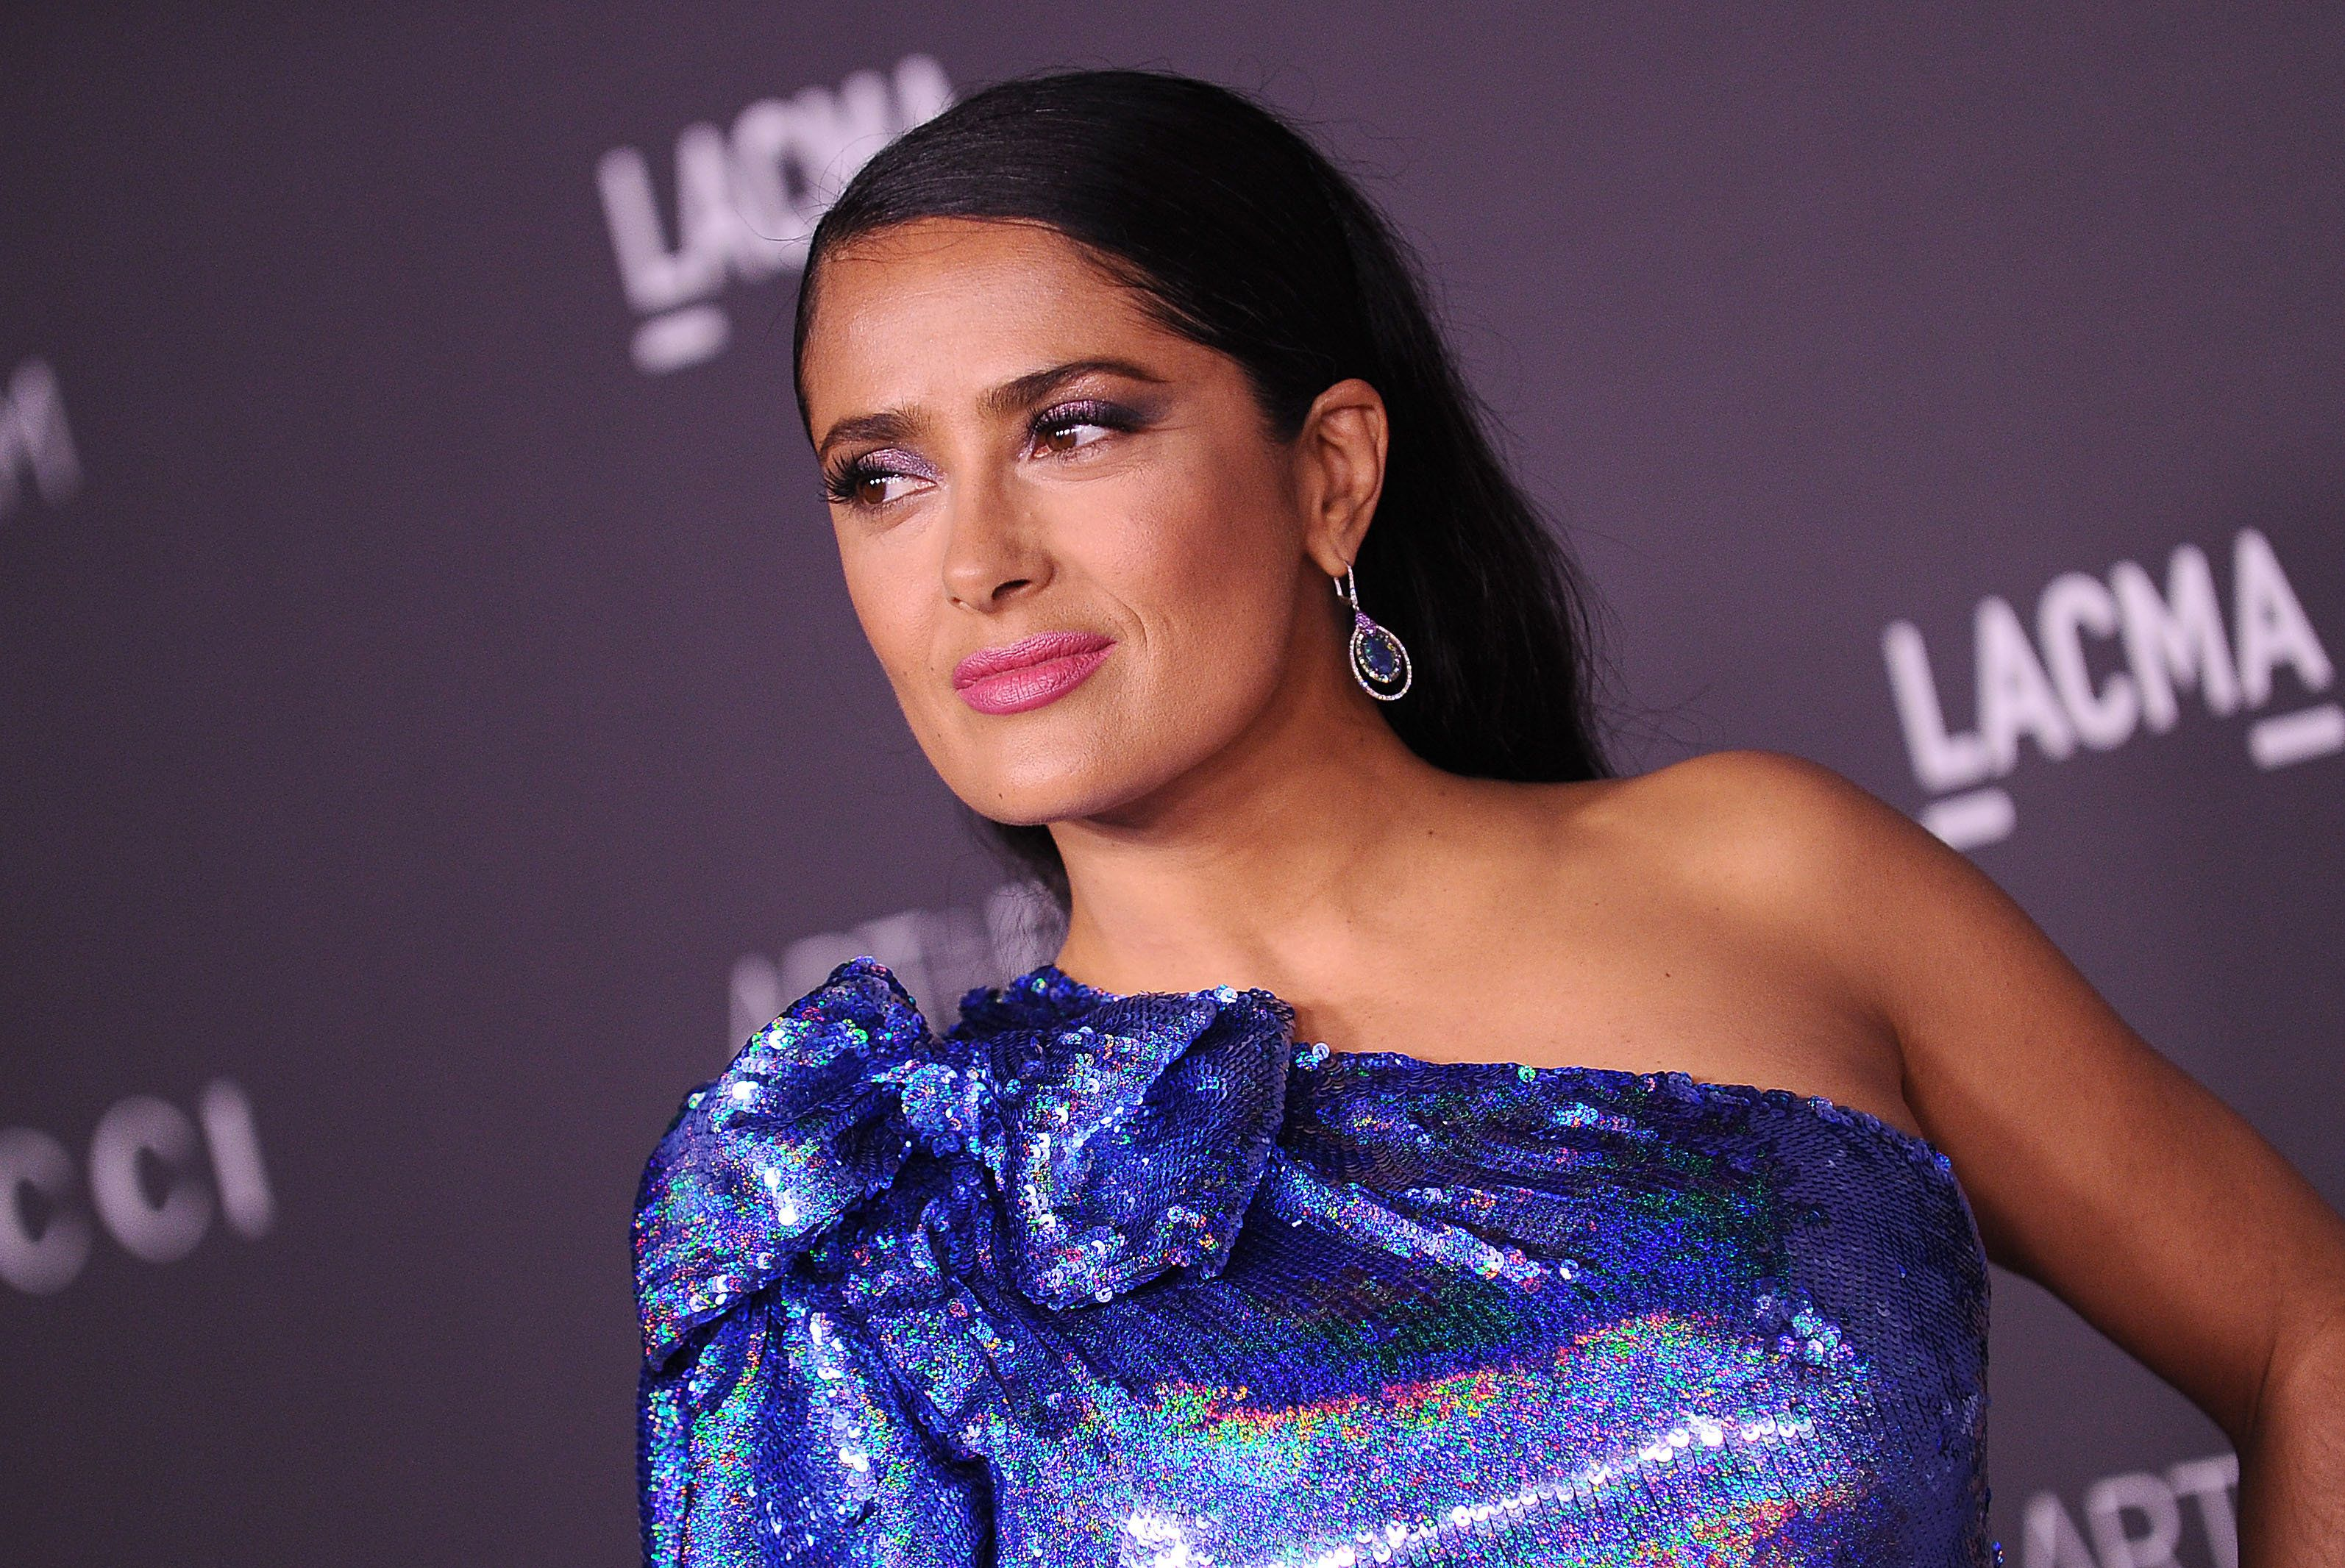 LOS ANGELES, CA - NOVEMBER 04:  Actress Salma Hayek attends the 2017 LACMA Art + Film gala at LACMA on November 4, 2017 in Los Angeles, California.  (Photo by Jason LaVeris/FilmMagic)